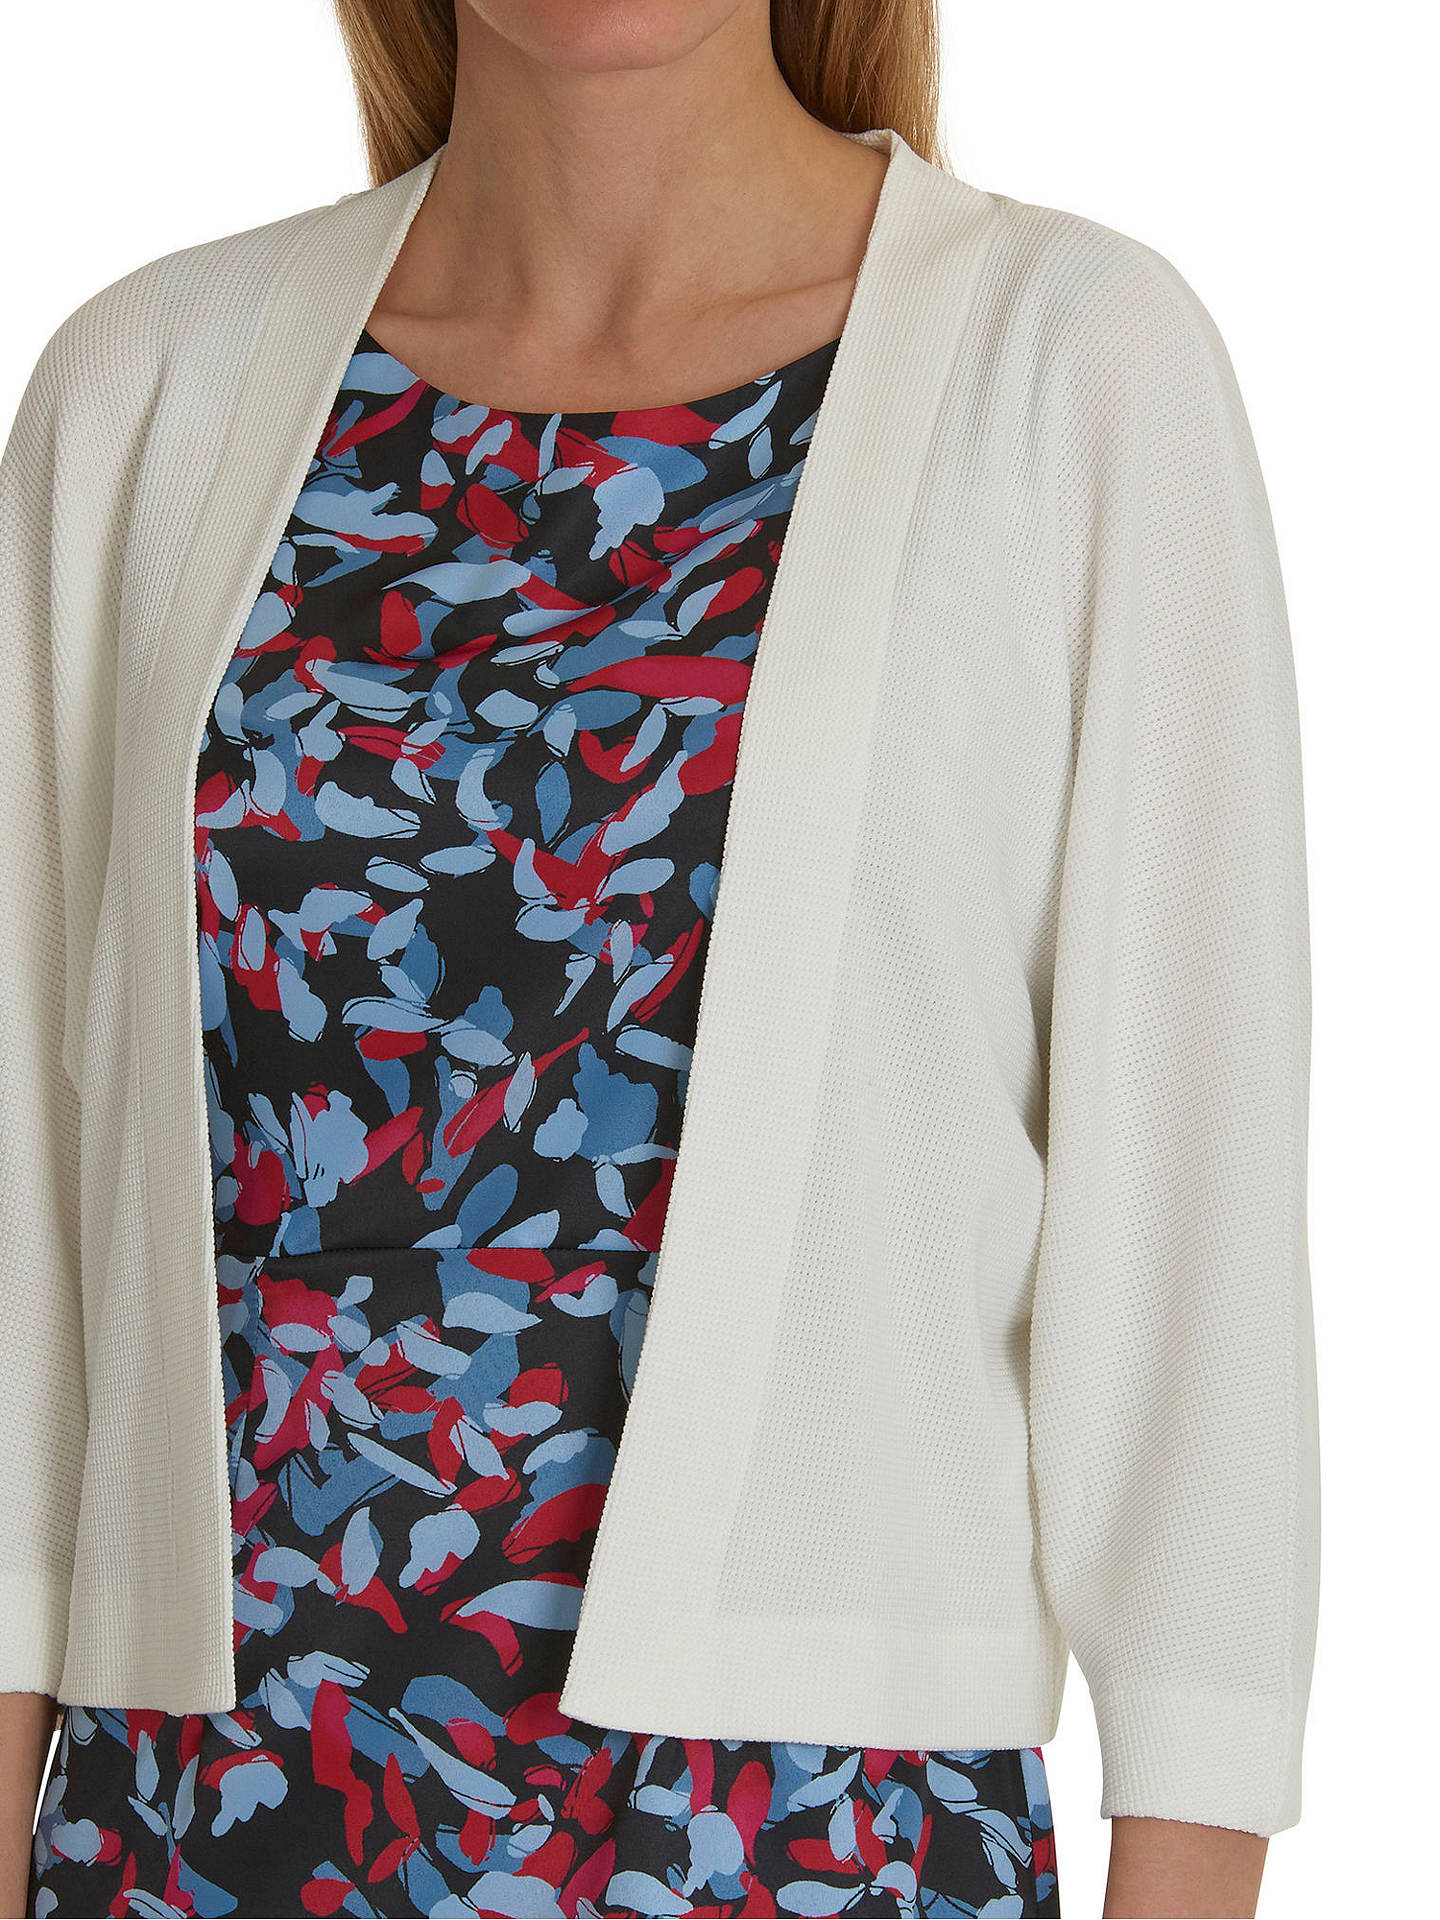 BuyBetty & Co. Textured Knit Cardigan, Snow White, 10 Online at johnlewis.com